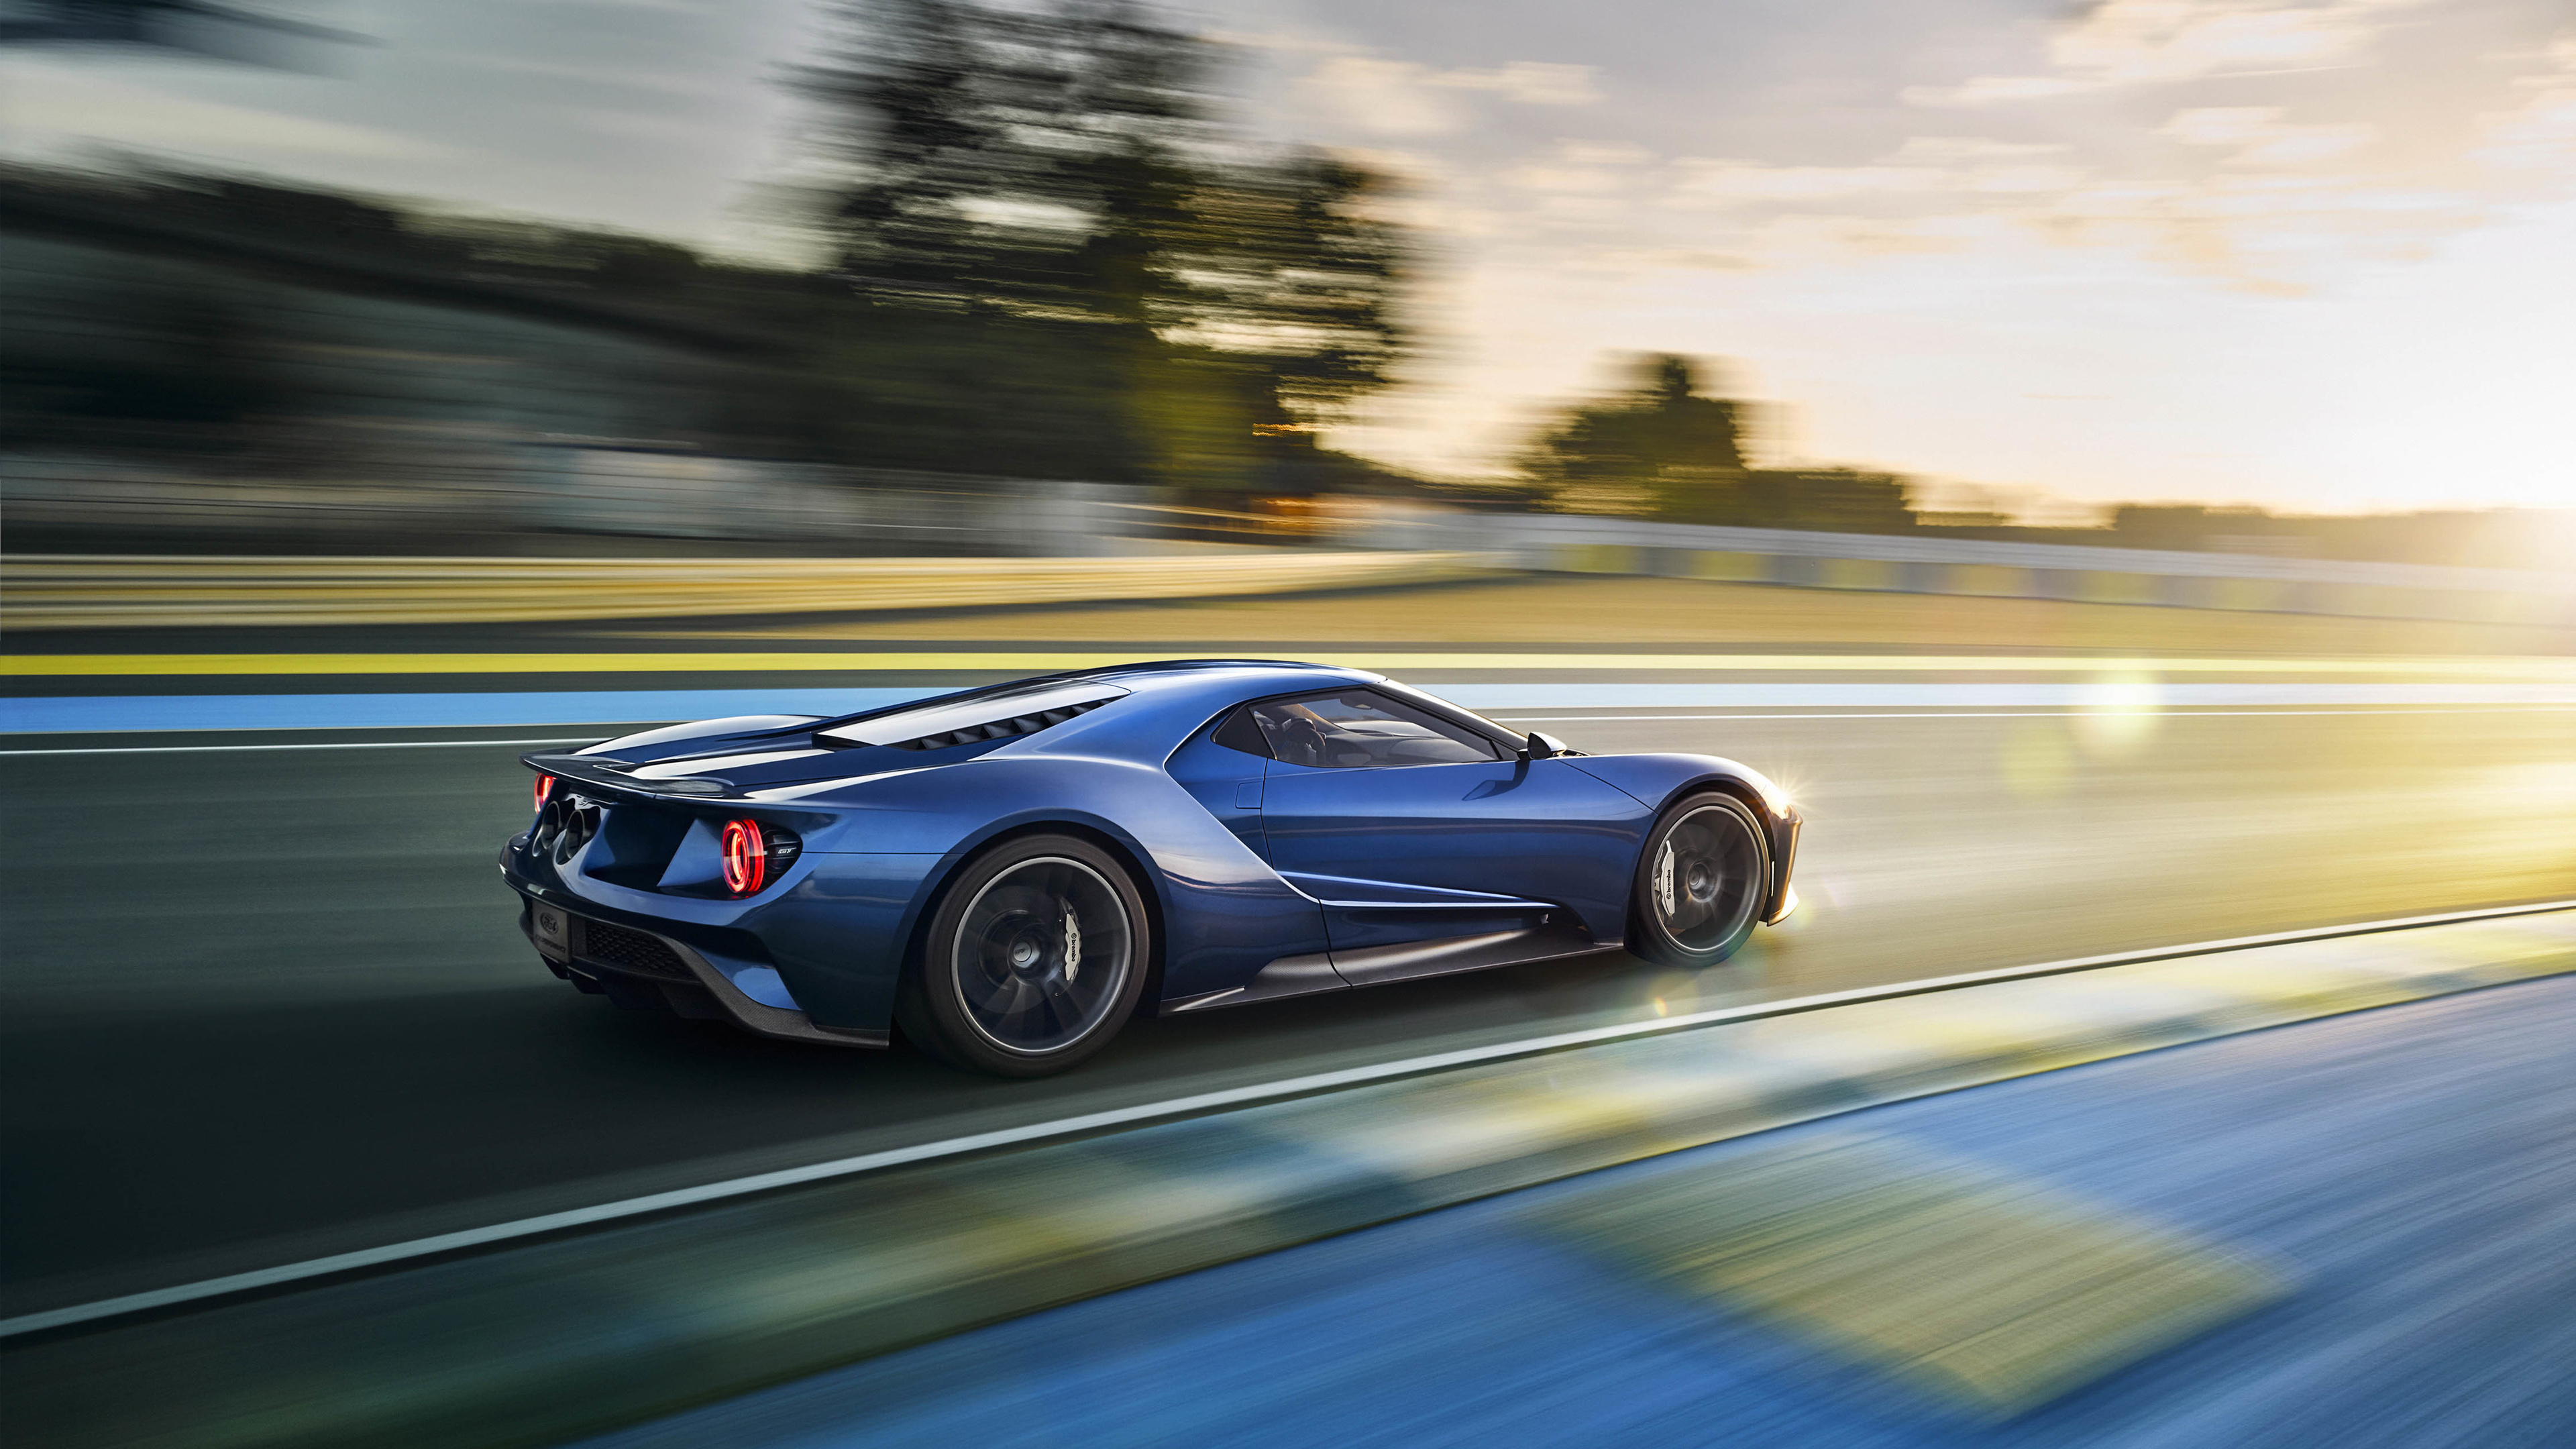 2017 Ford Gt 4k Wallpaper Hd Car Wallpapers 4k Ford Gt